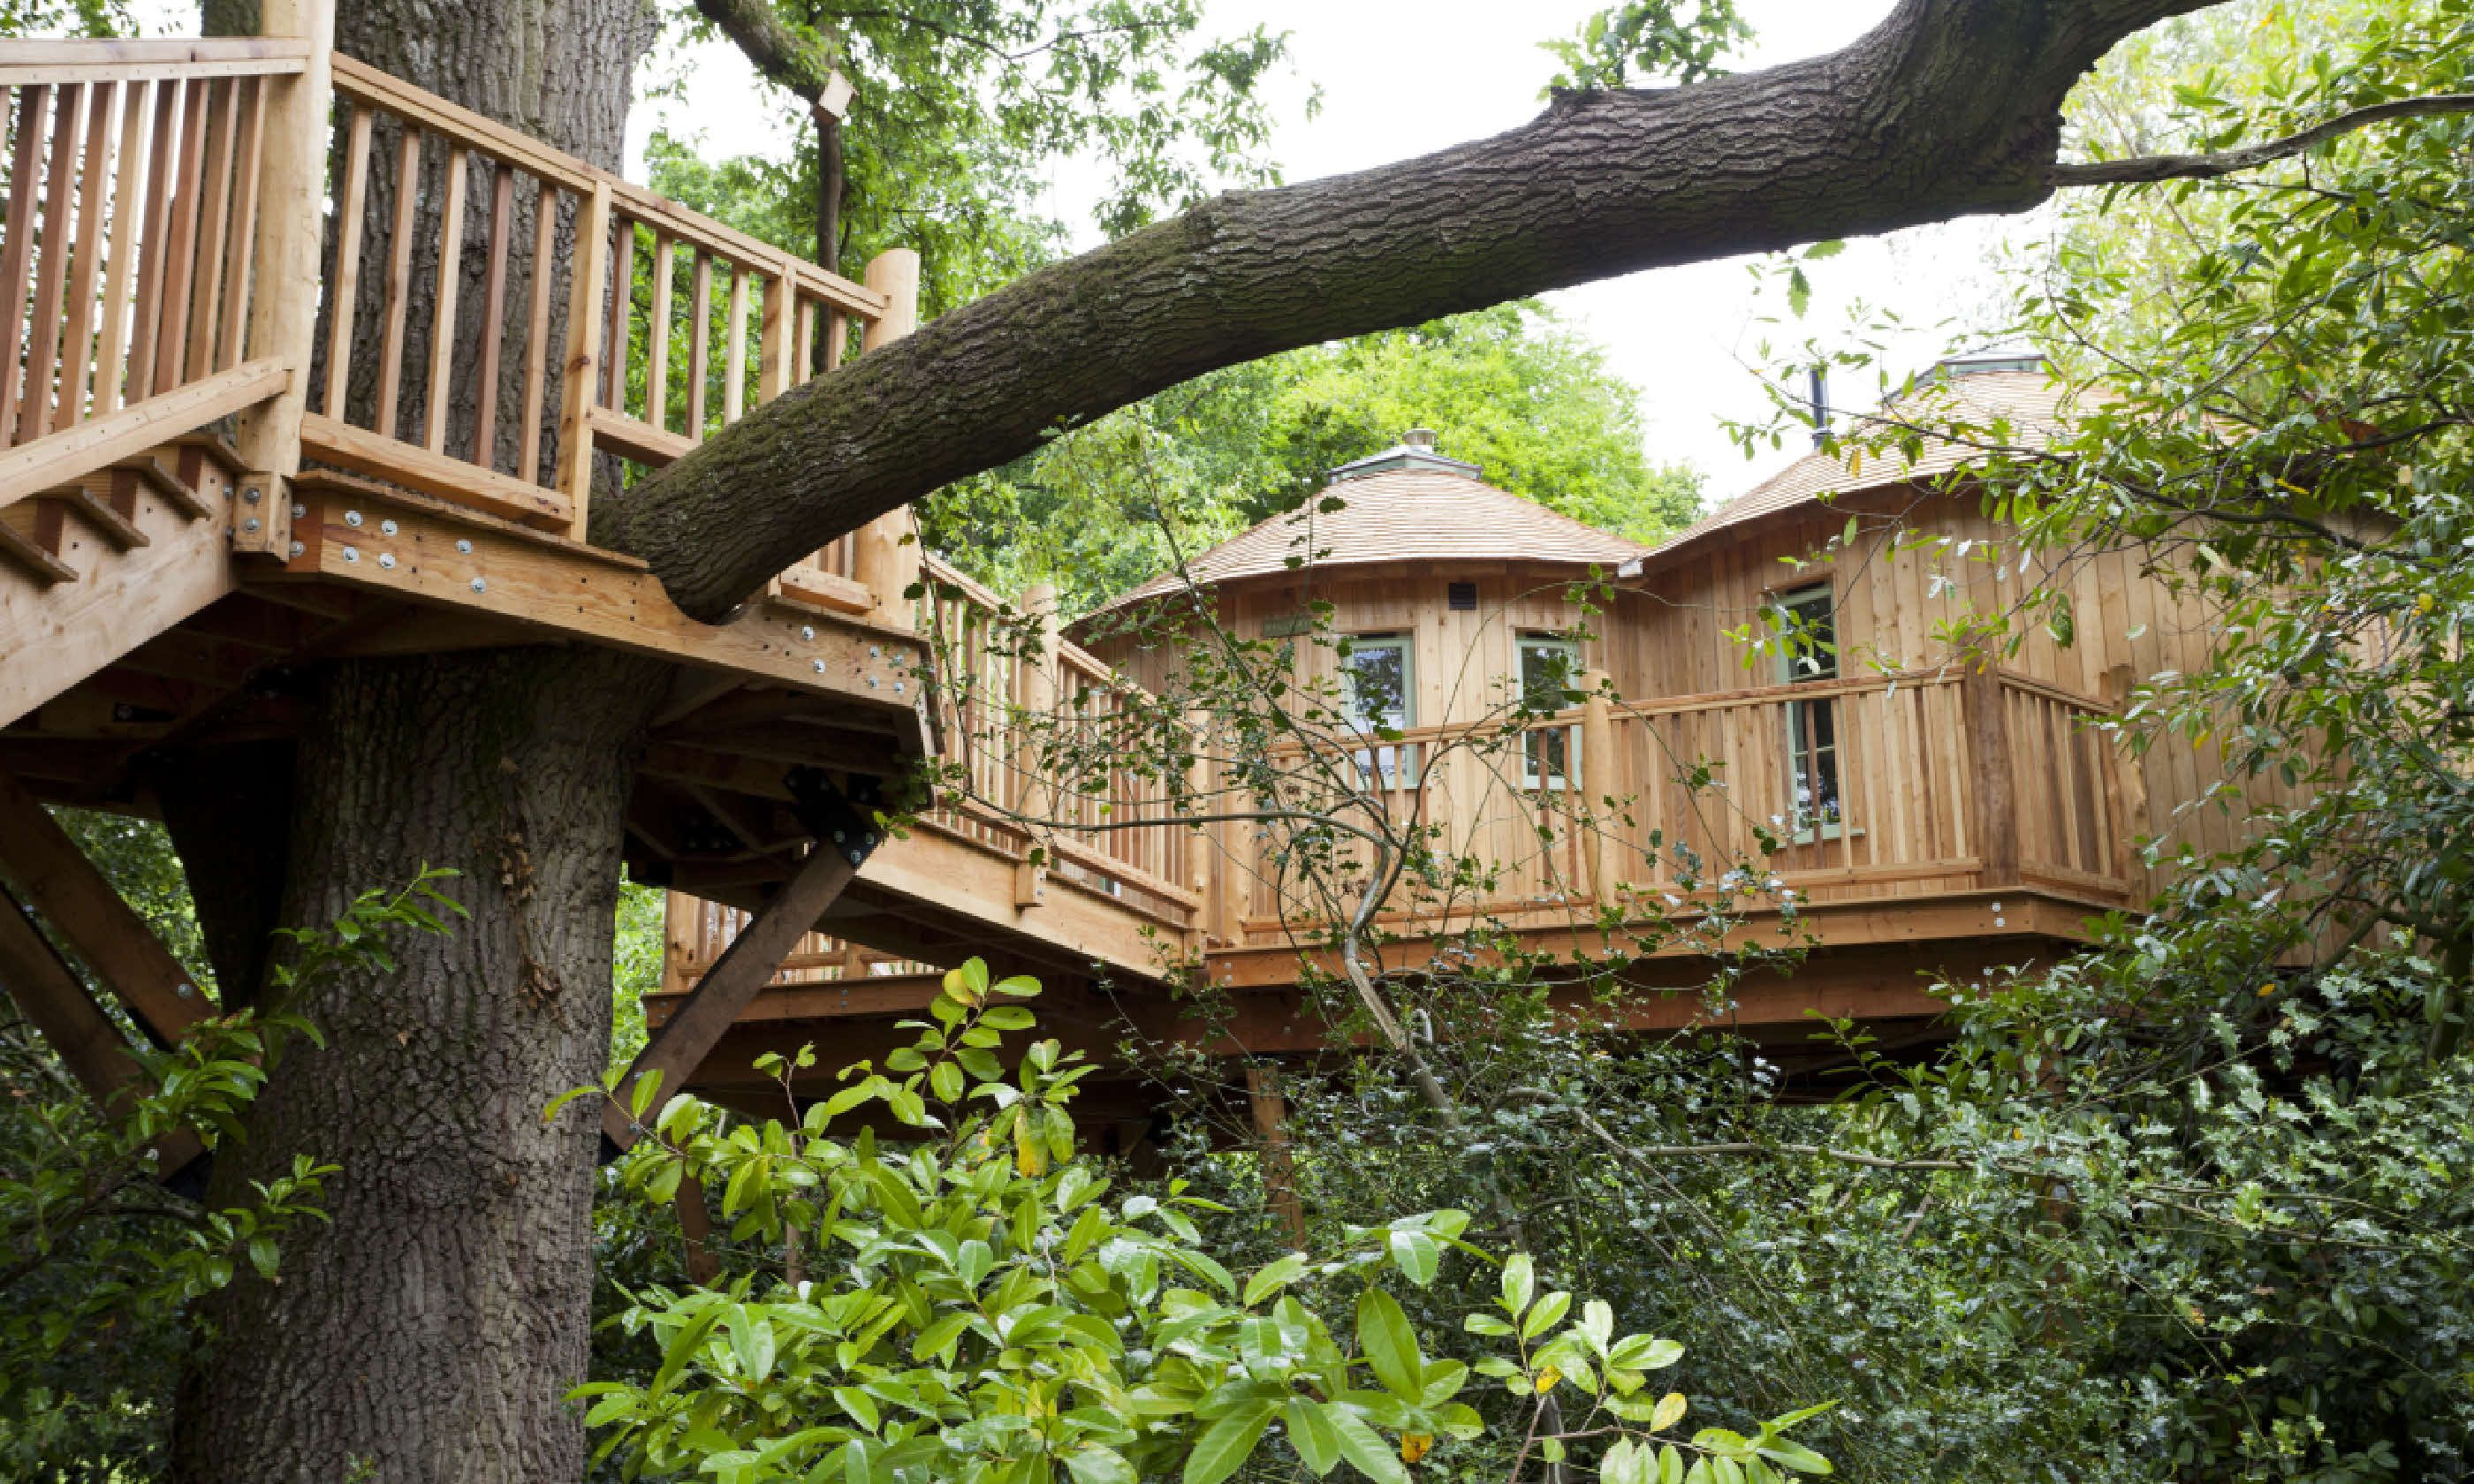 The Treehouse at Harptree Court Canopy and